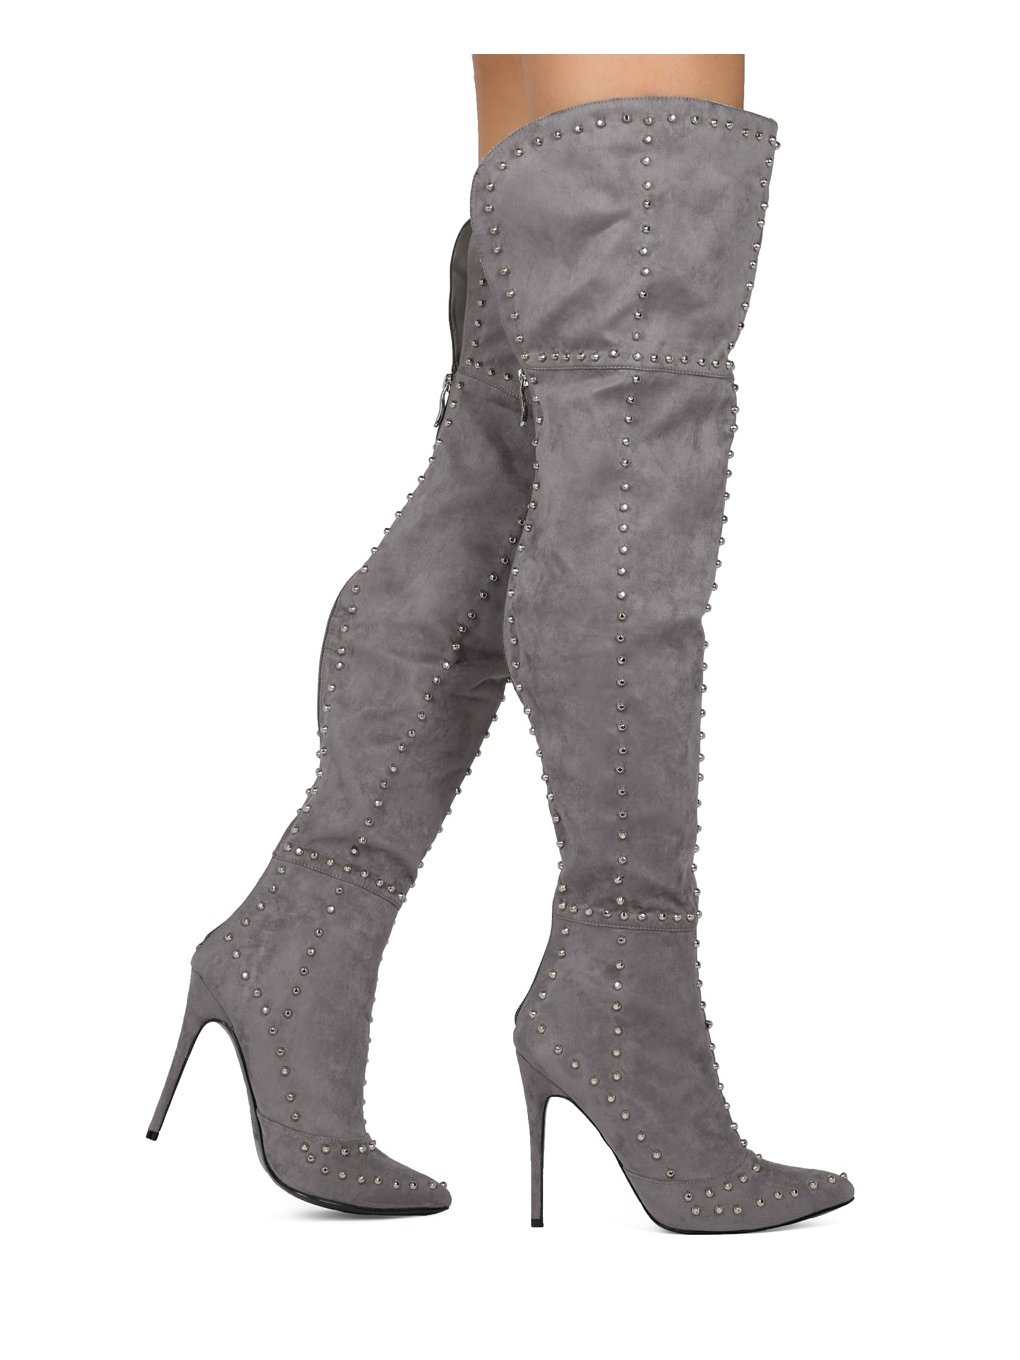 Alrisco Women Faux Suede Thigh High Pointy Toe Studded Stiletto Boot HE63 - Grey Faux Suede (Size: 8.0)